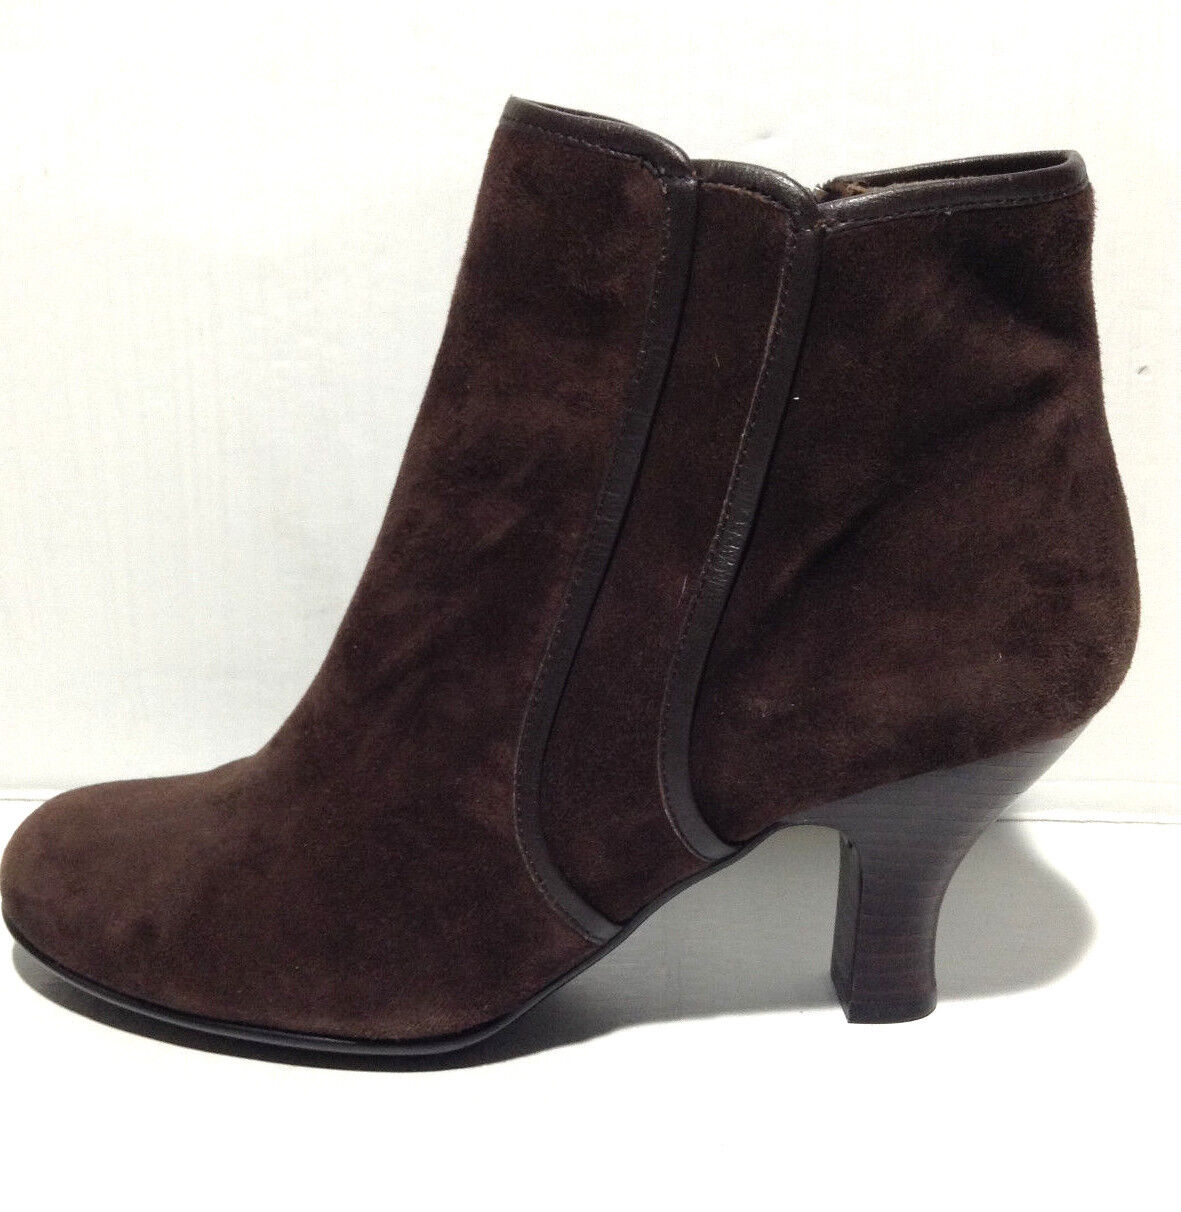 Womans 7.5 Sofft Ankle Boots Brown Leather Heel Booties Slip On Suede (ck)